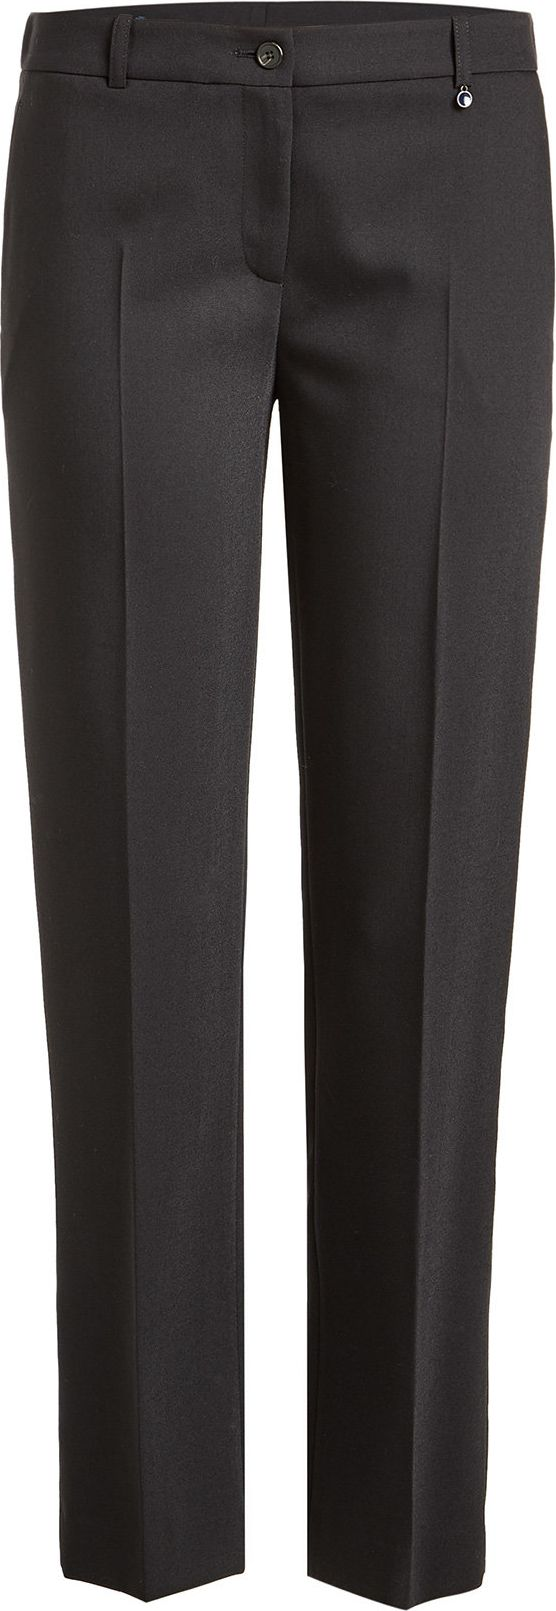 Jil Sander Navy - Slim Pants with Wool